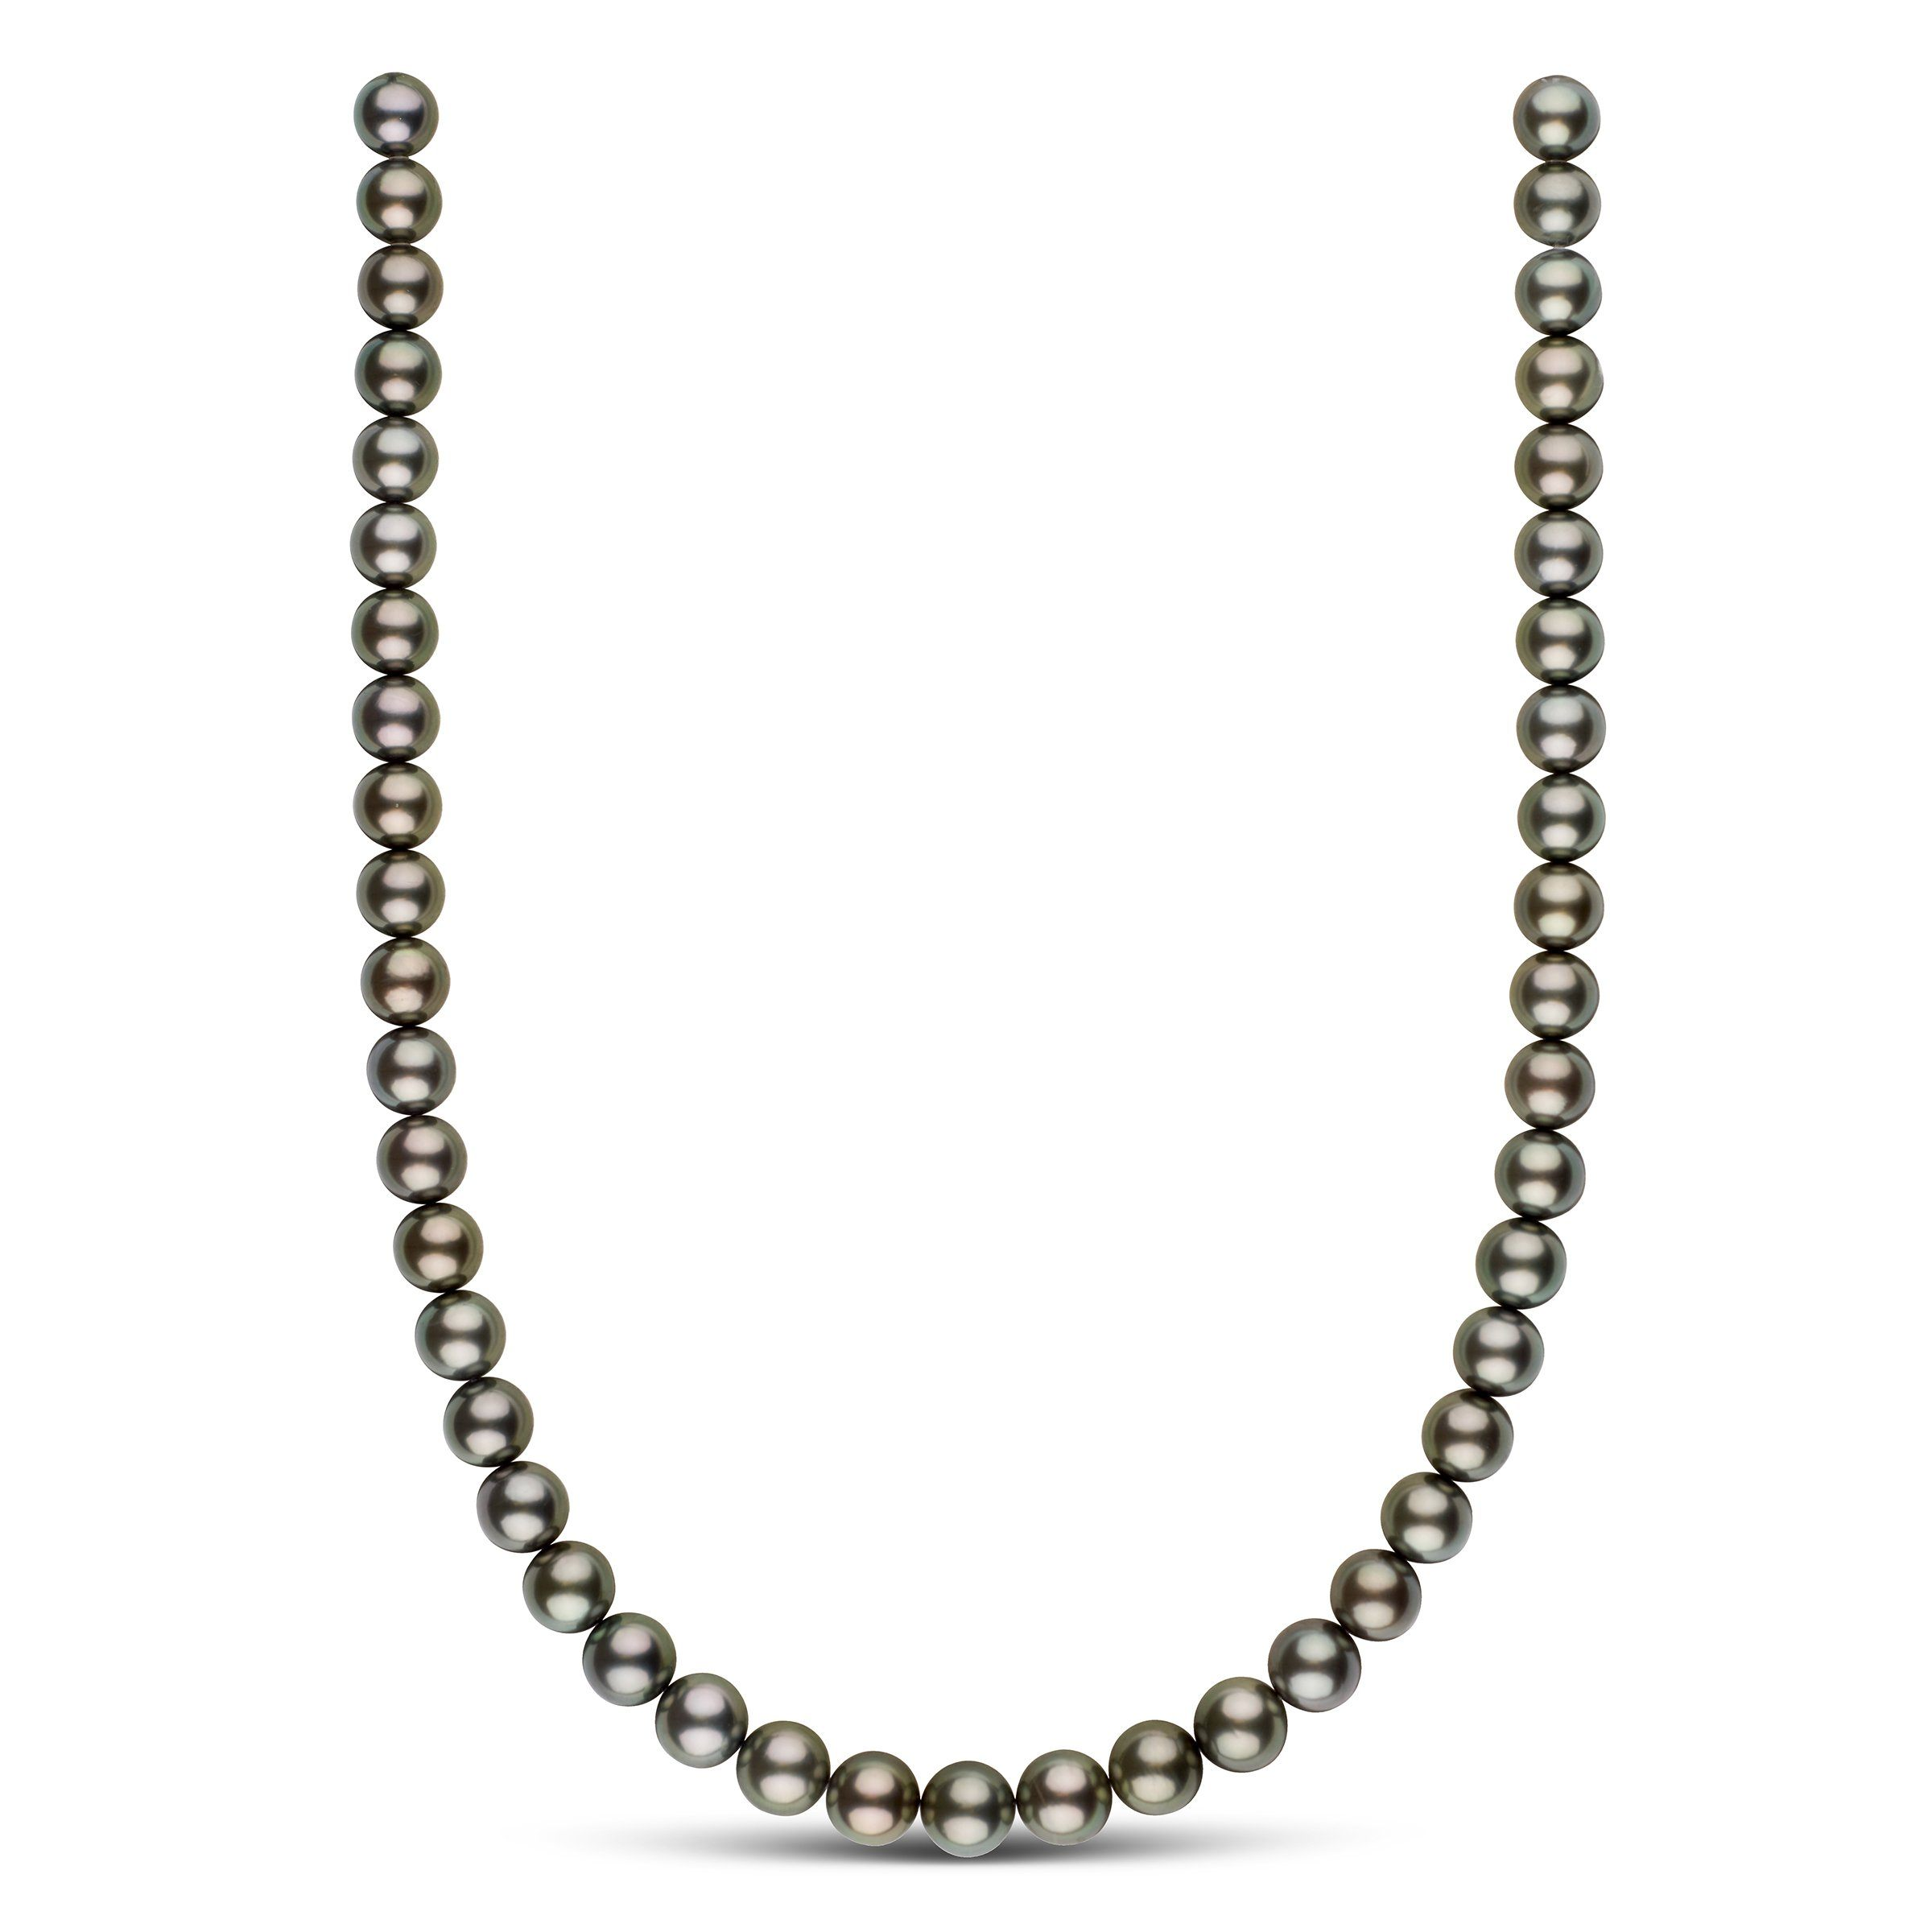 9.0-9.9 mm AAA Tahitian Round Pearl Necklace